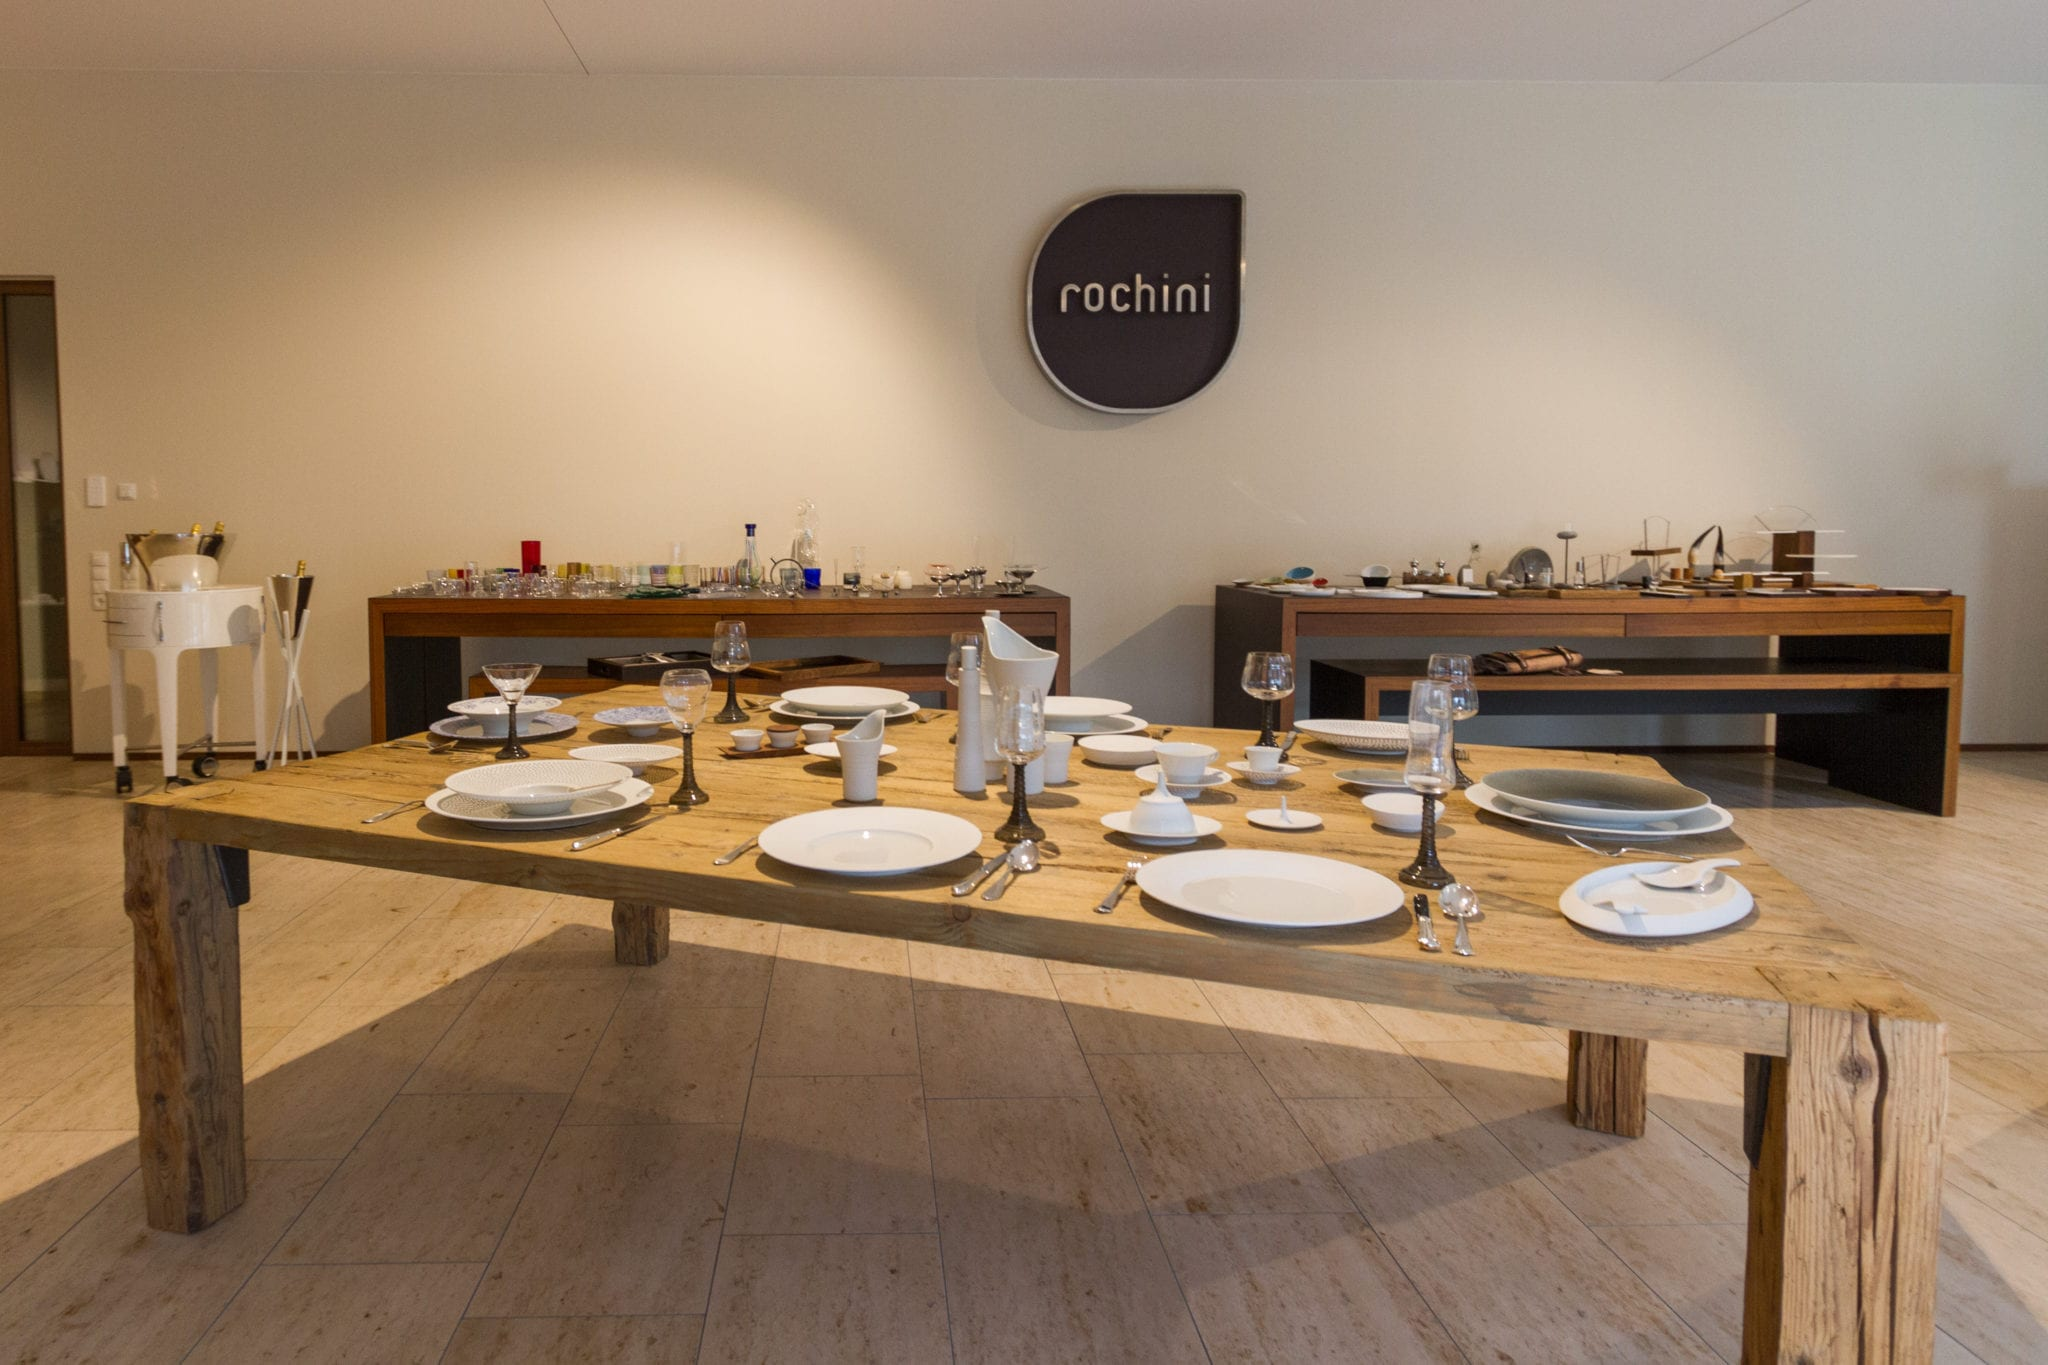 rochini showroom 31 I started in 2009 as a 100% cross company in this sector, without any customer...